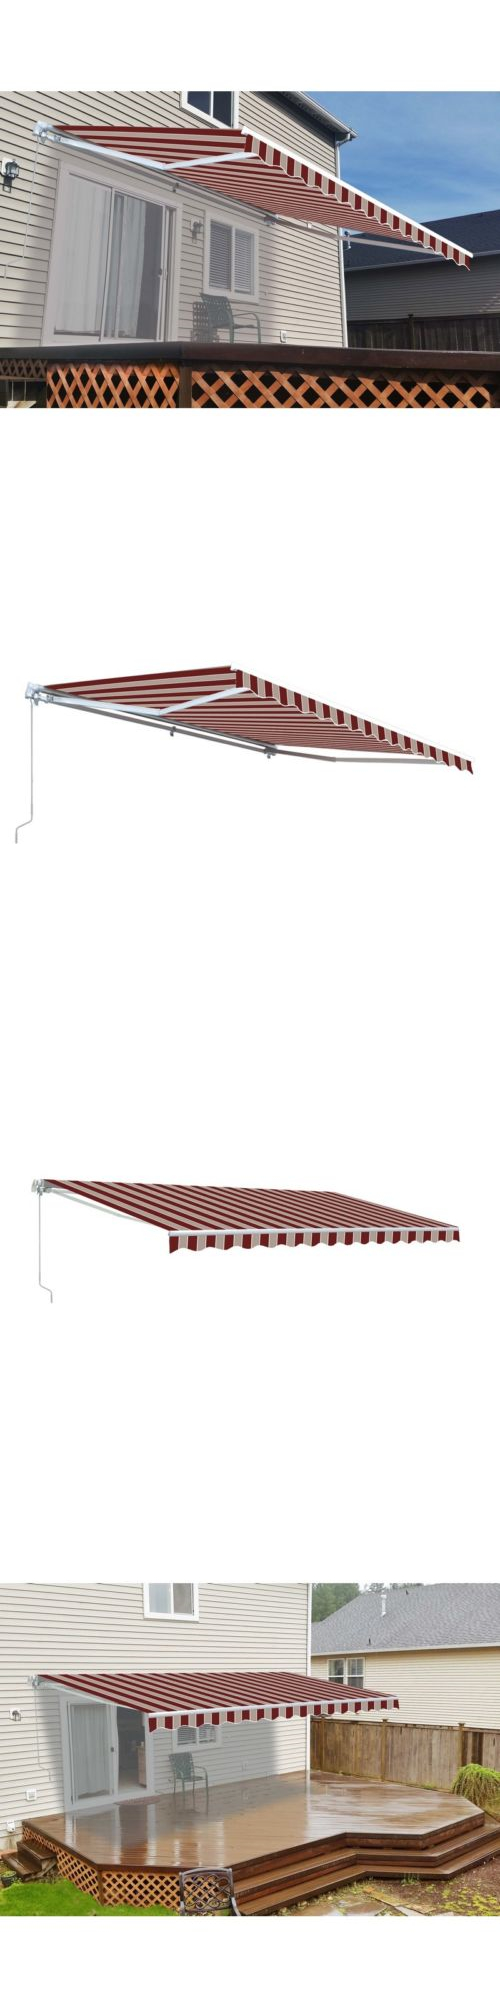 Awnings And Canopies 180992: Aleko Retractable Patio Awning 10 X 8 Ft Deck  Sunshade Multistripe